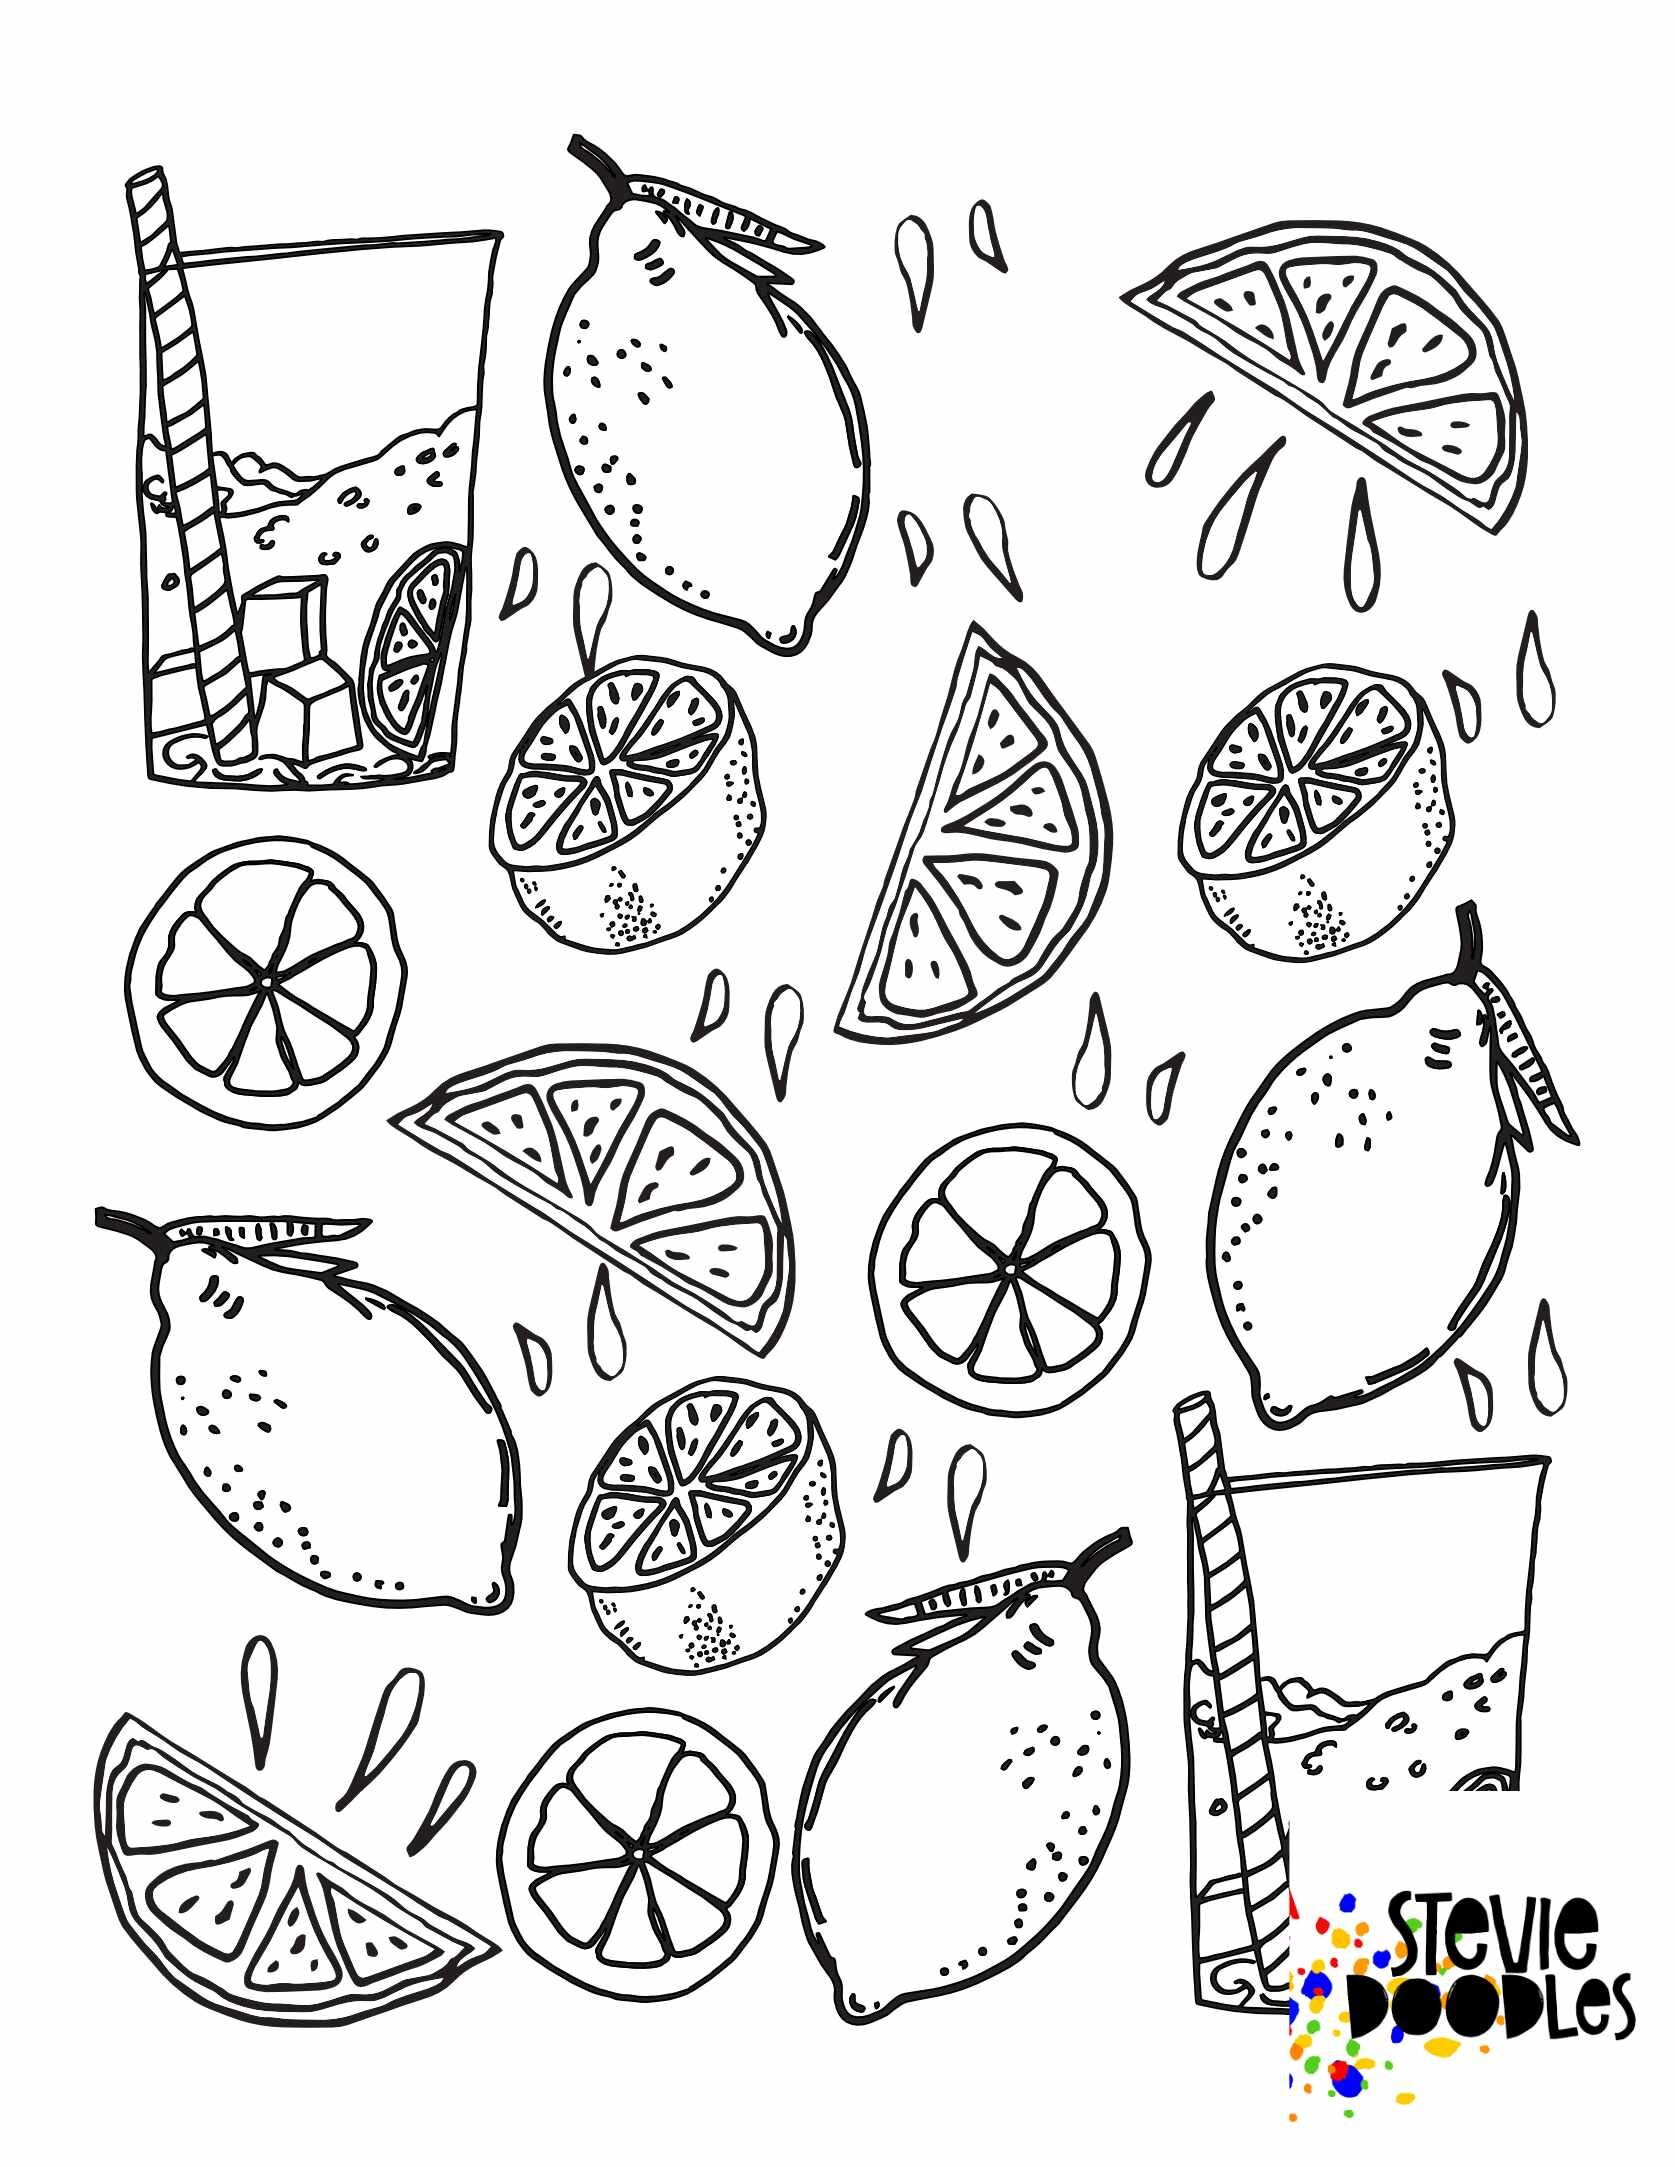 Quotes 1000 Free Printable Coloring Pages Stevie Doodles Free Printable Coloring Pages